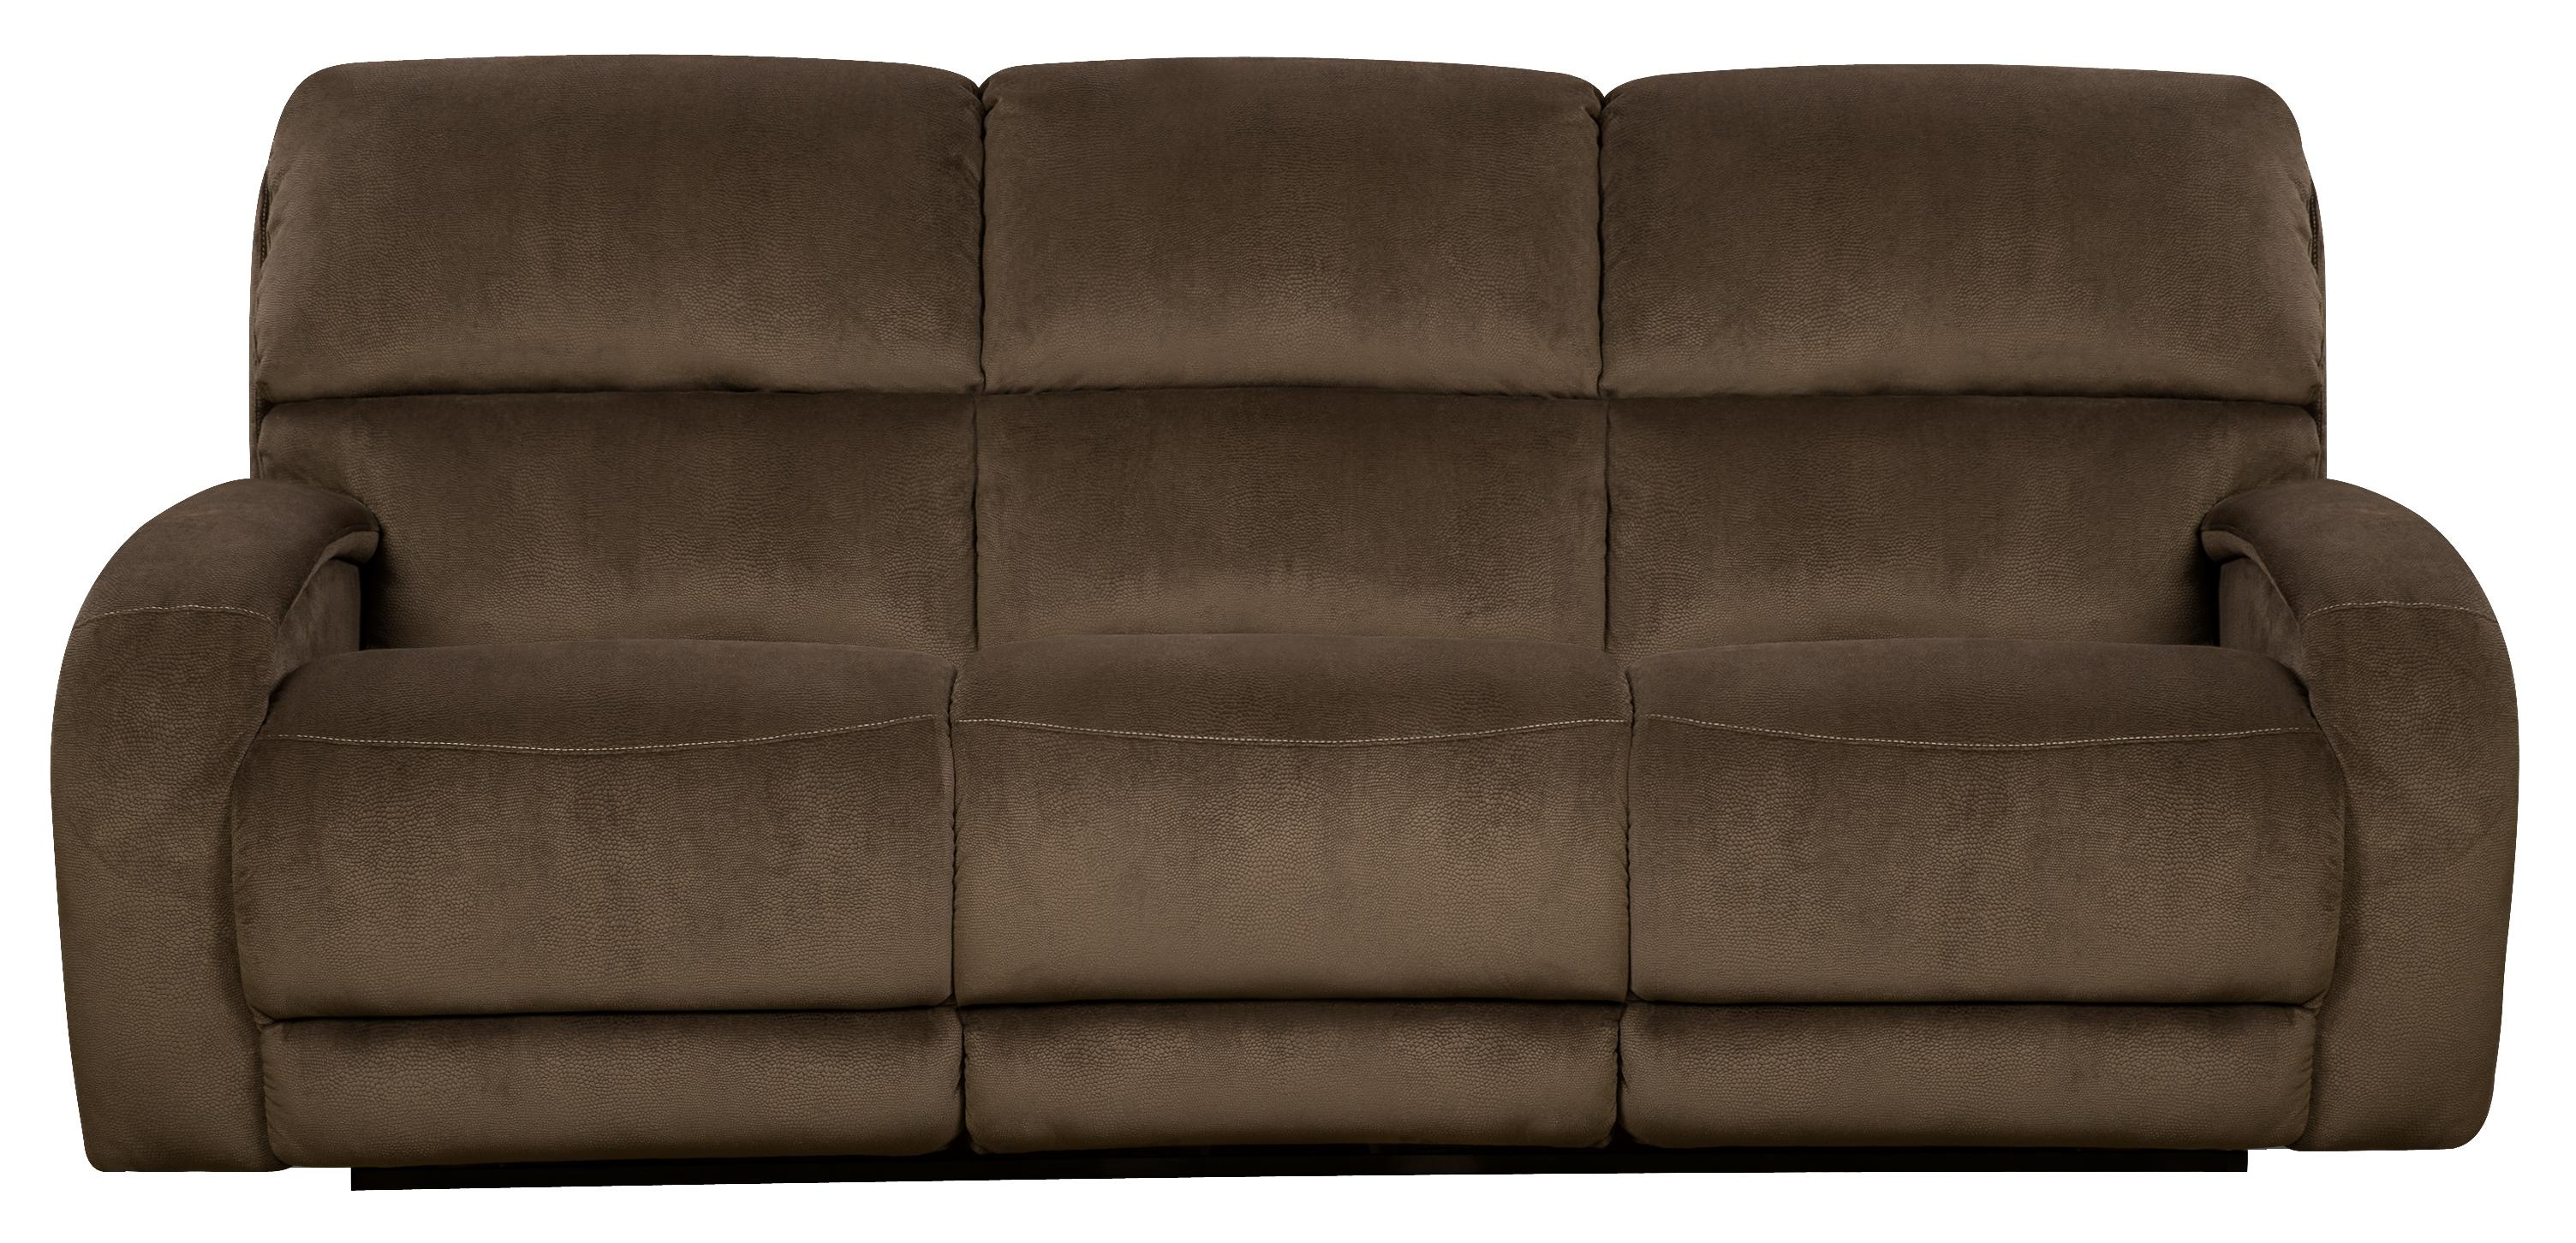 Southern Motion Fandango 884 Power Reclining Sofa - Item Number: 884-31 PWR